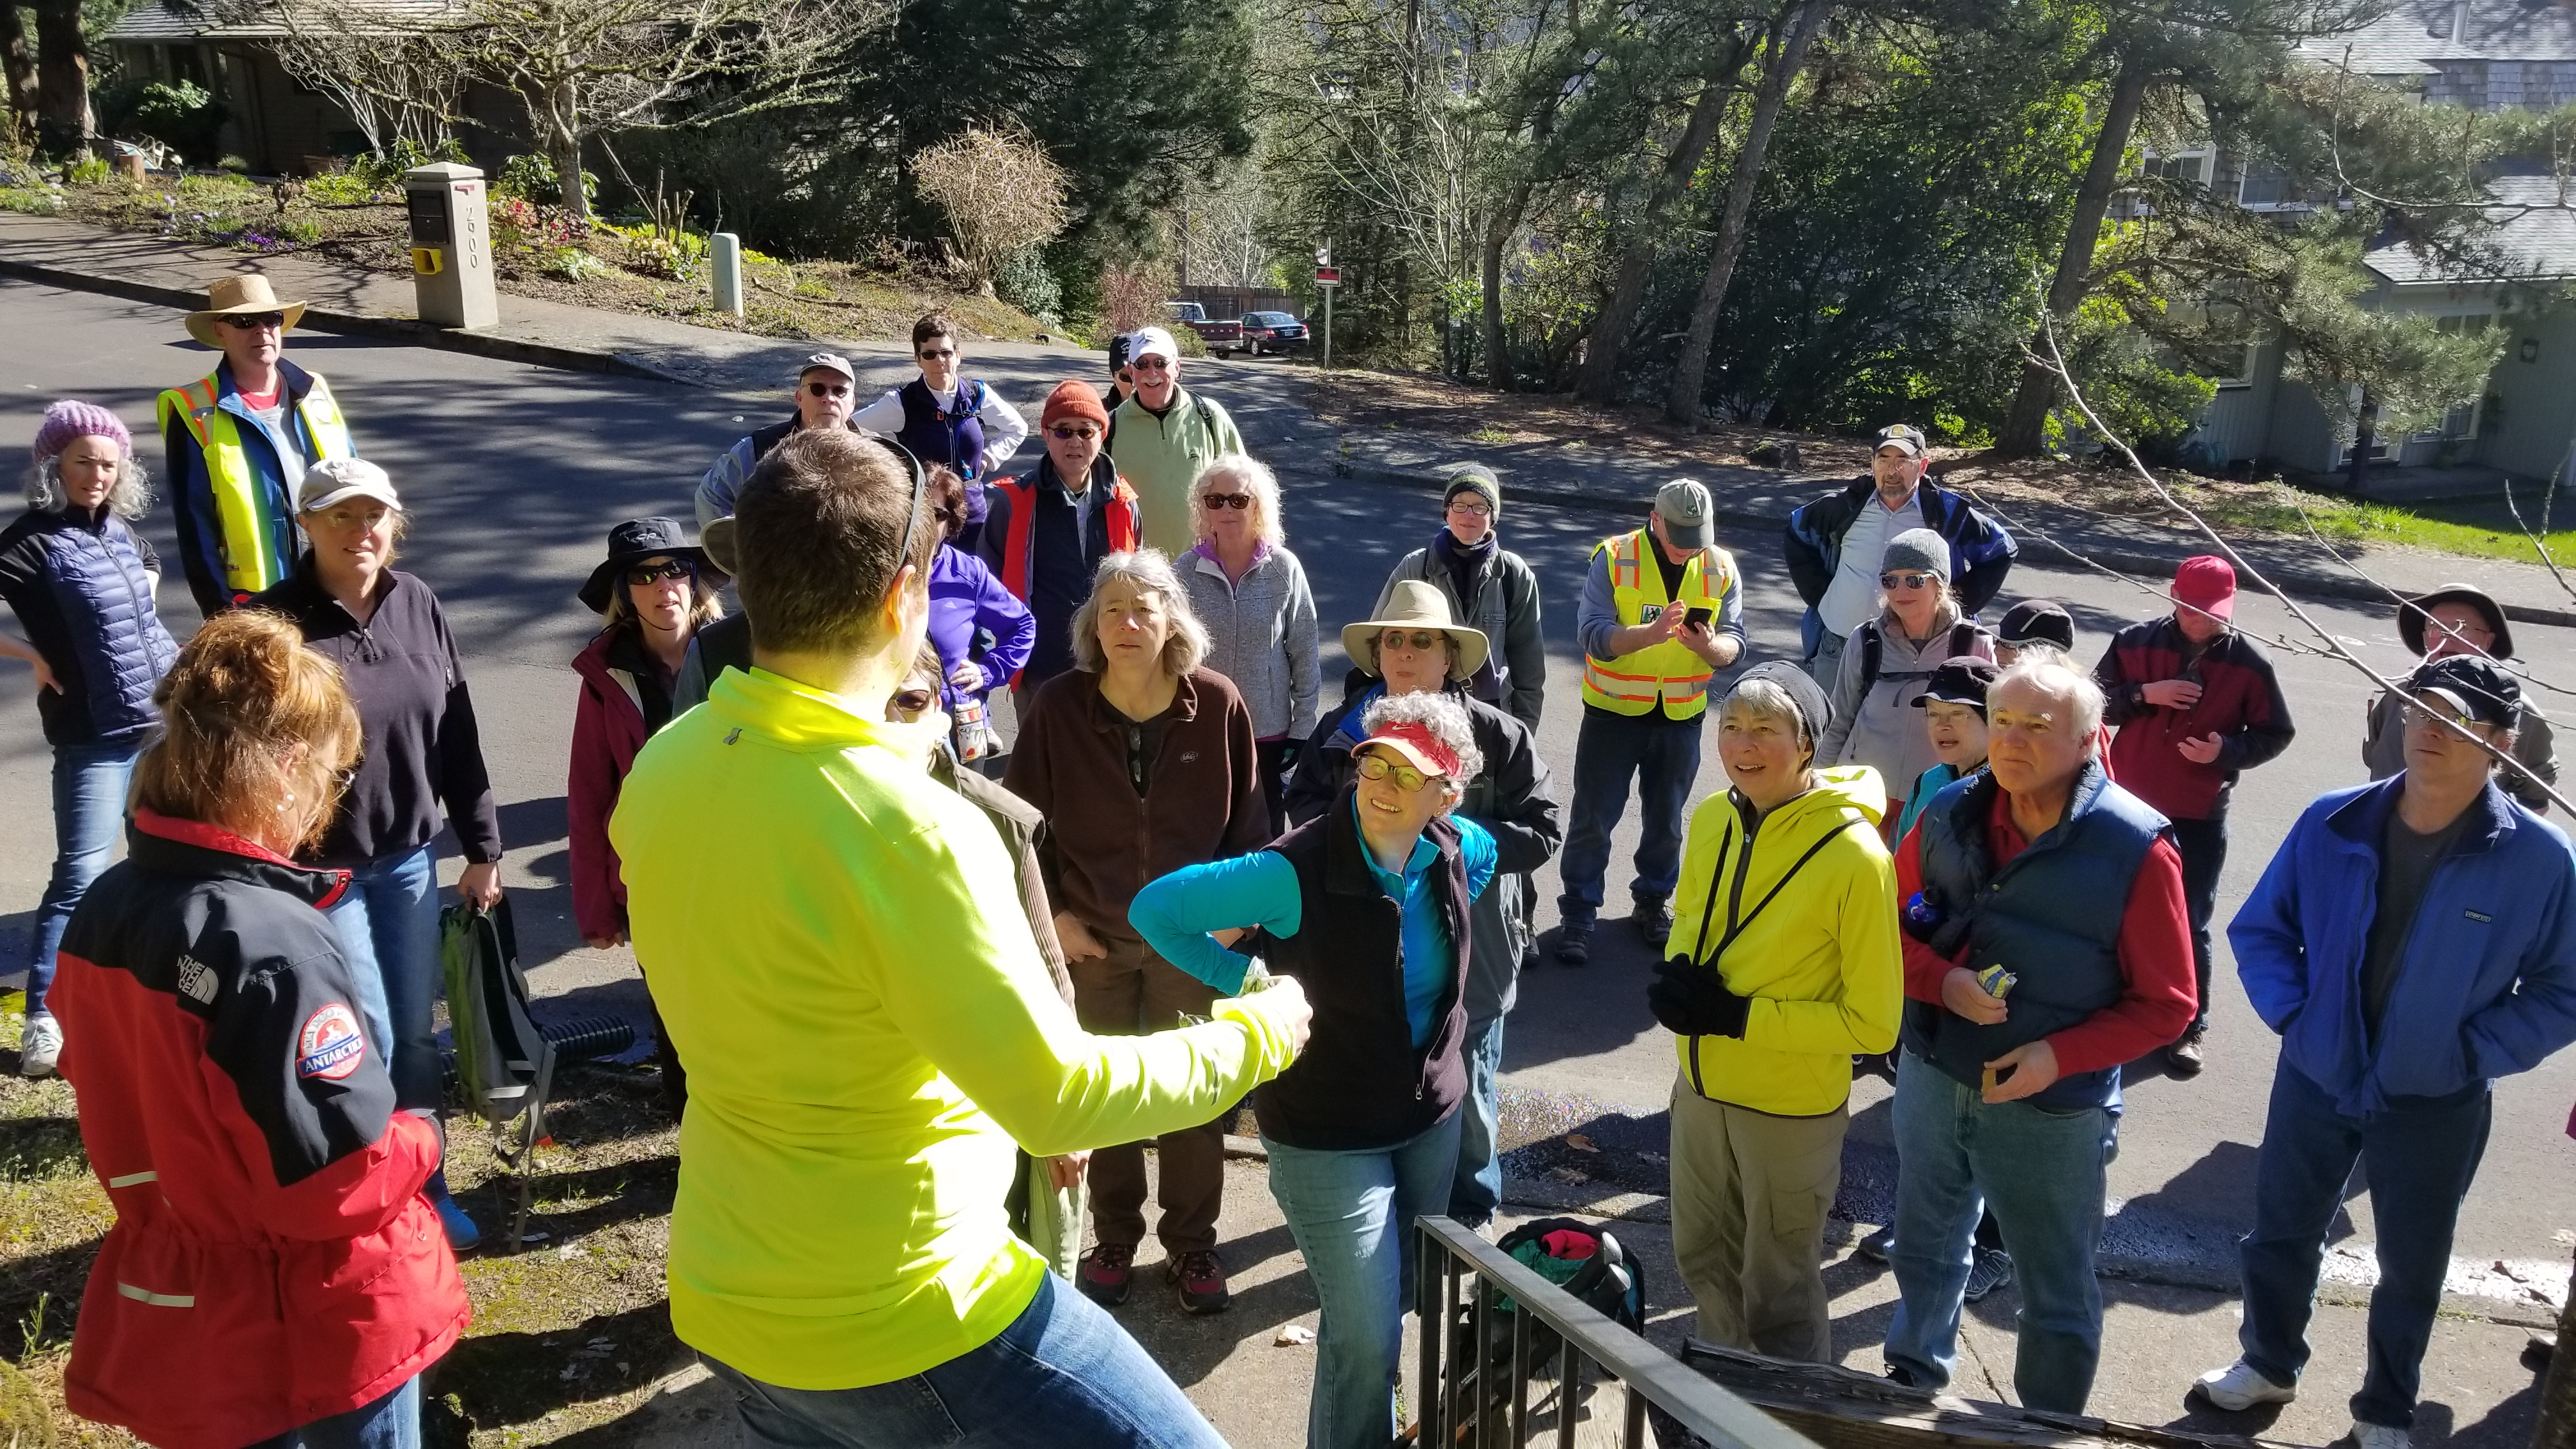 Rick Kappler told the SW Trails hiking group about the history of the stairs.